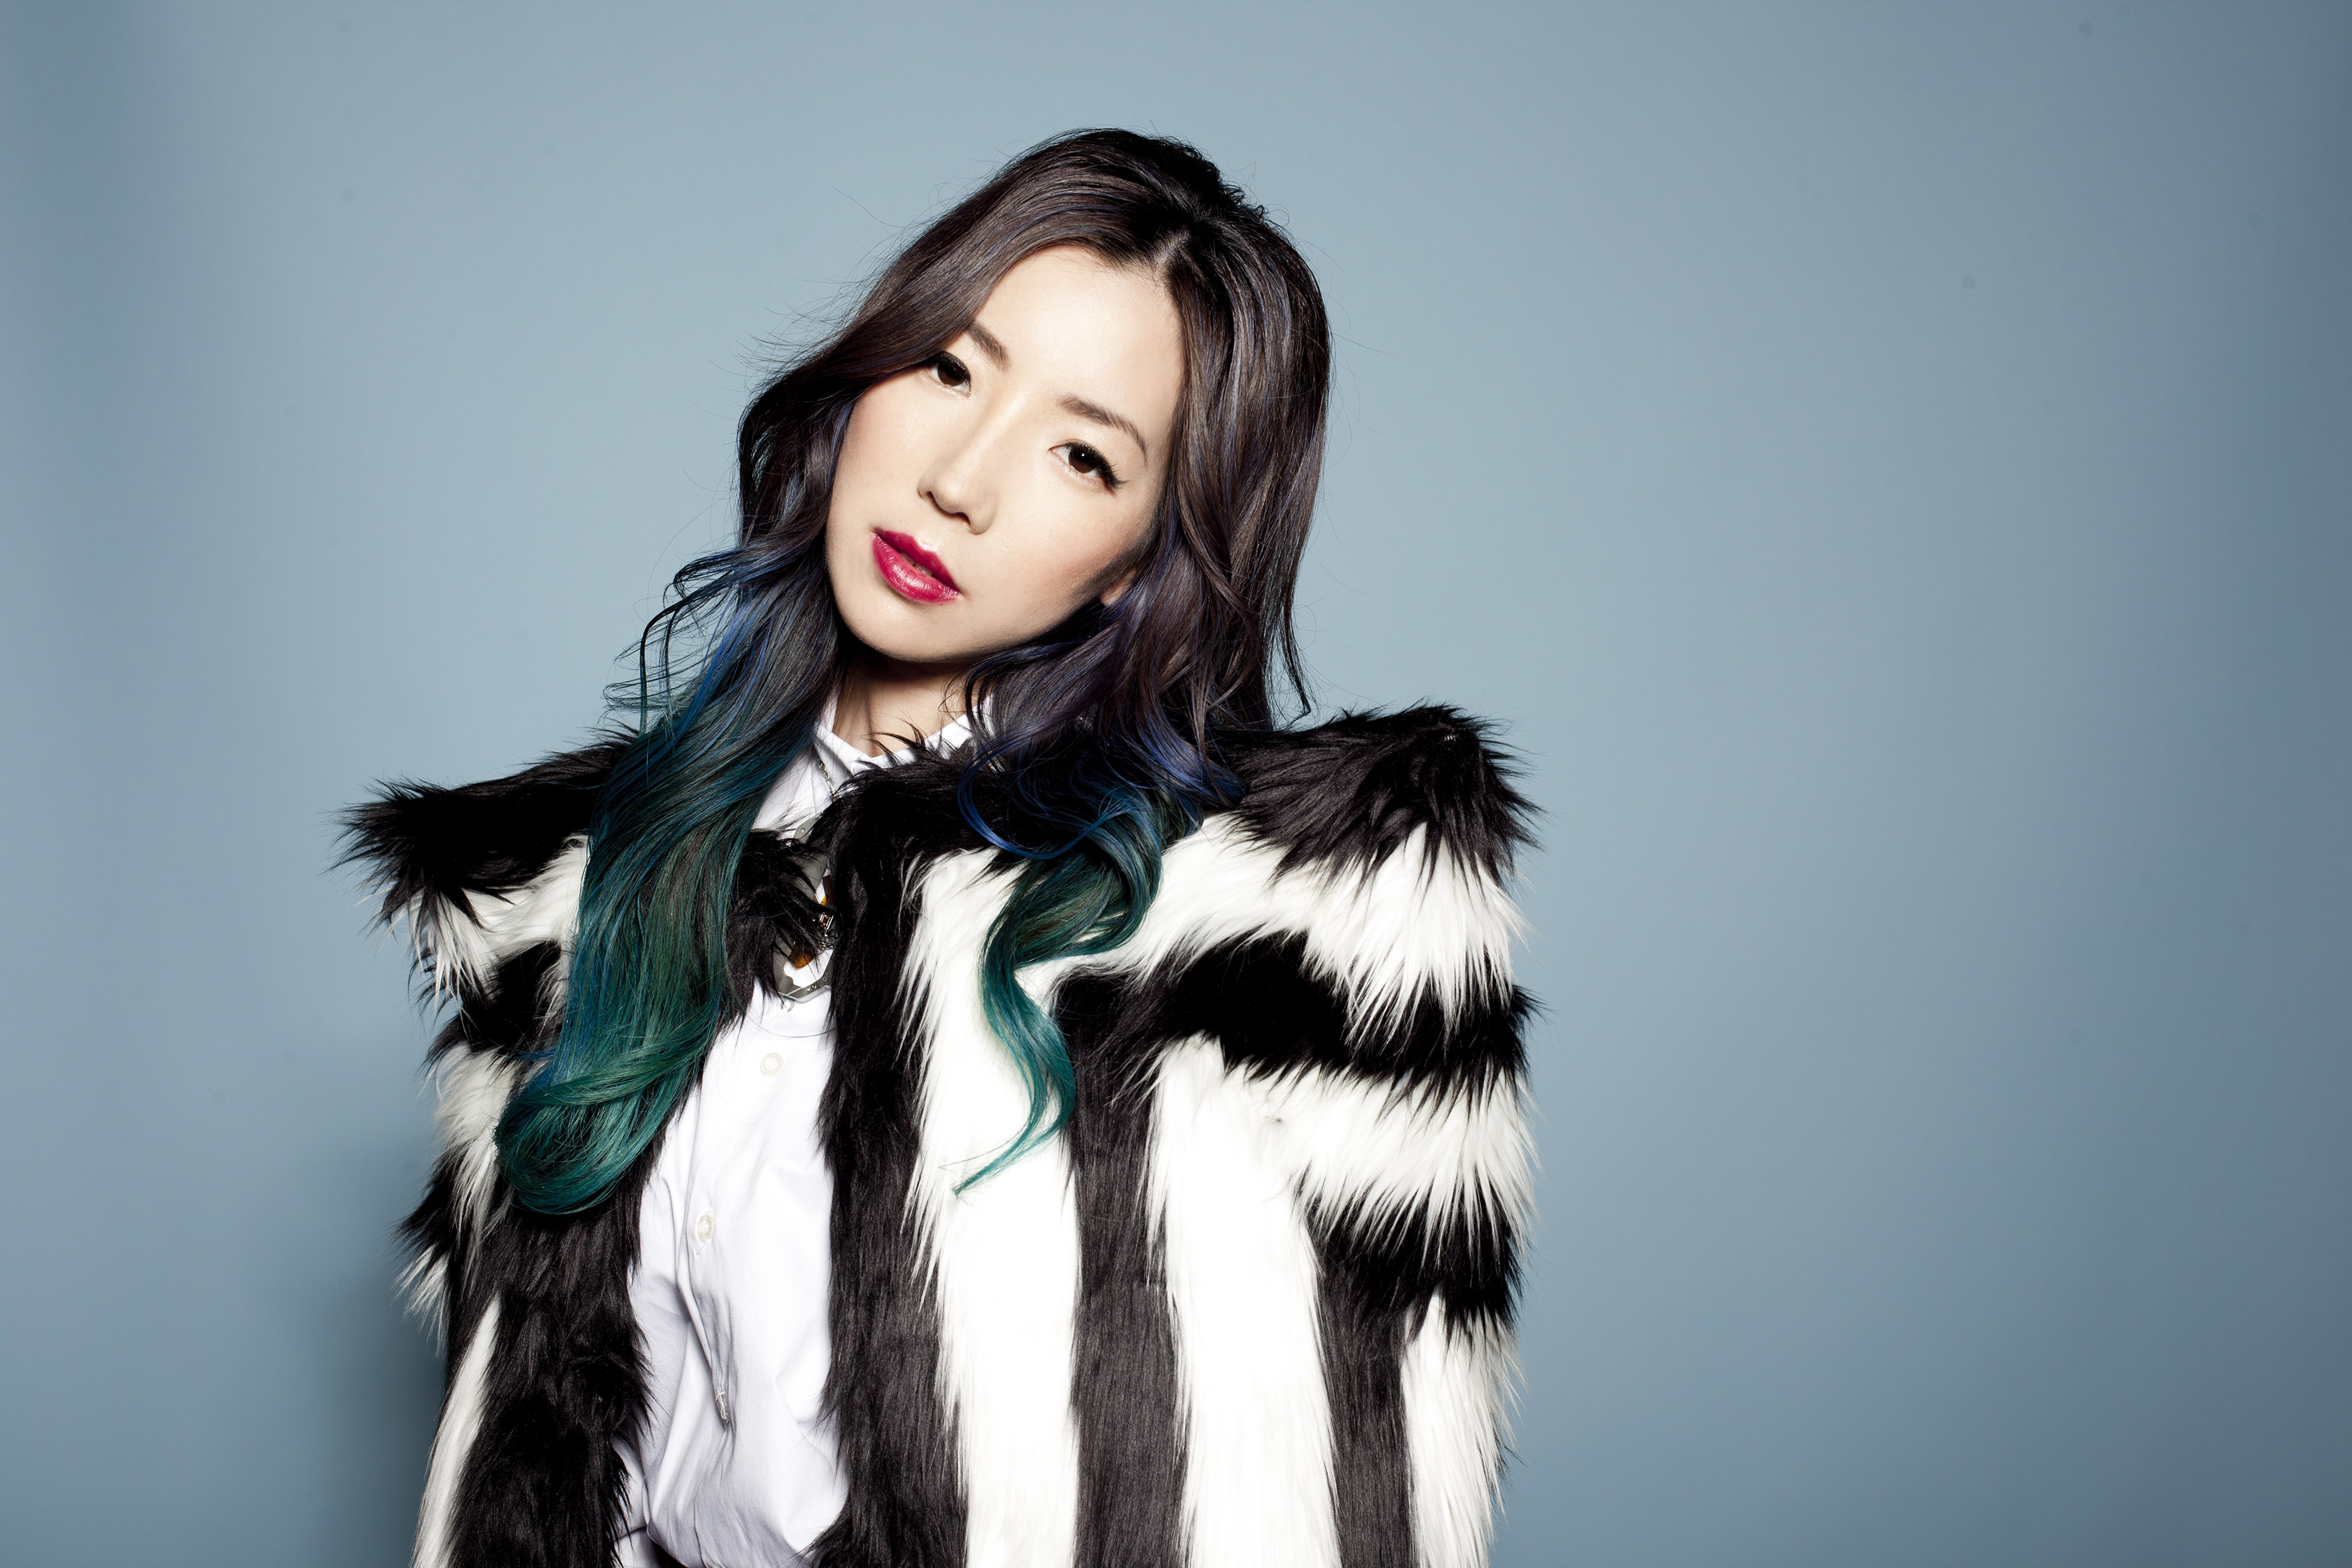 TOKiMONSTA Track featuring The Drums' Jonny Pierce. Her forthcoming release 'Fovere' comes out March 4th via Young Art.